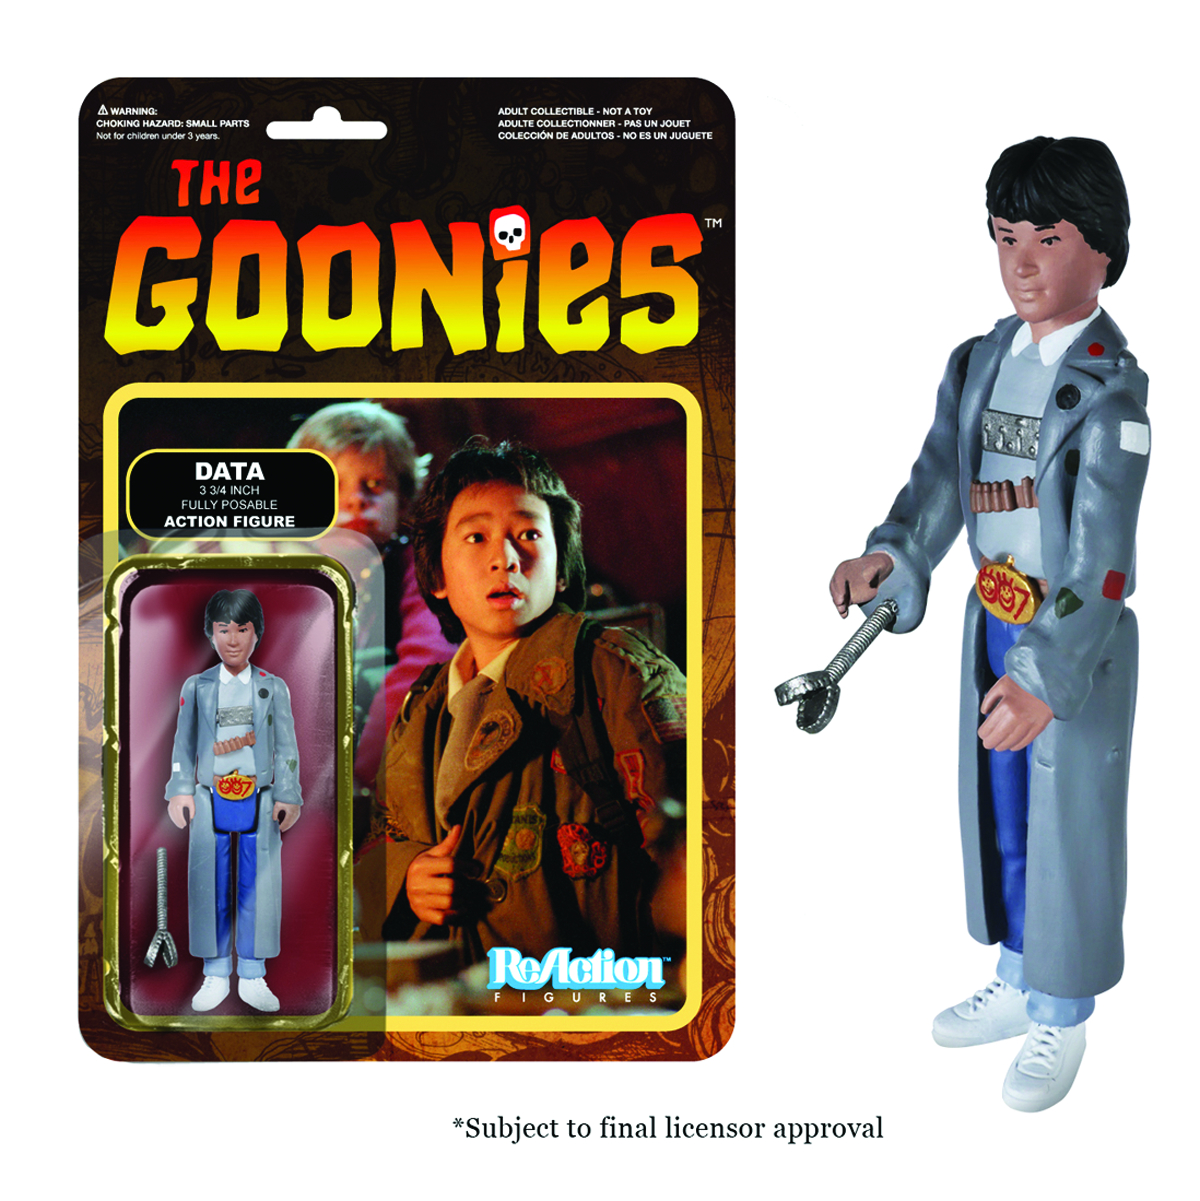 REACTION GOONIES DATA FIG